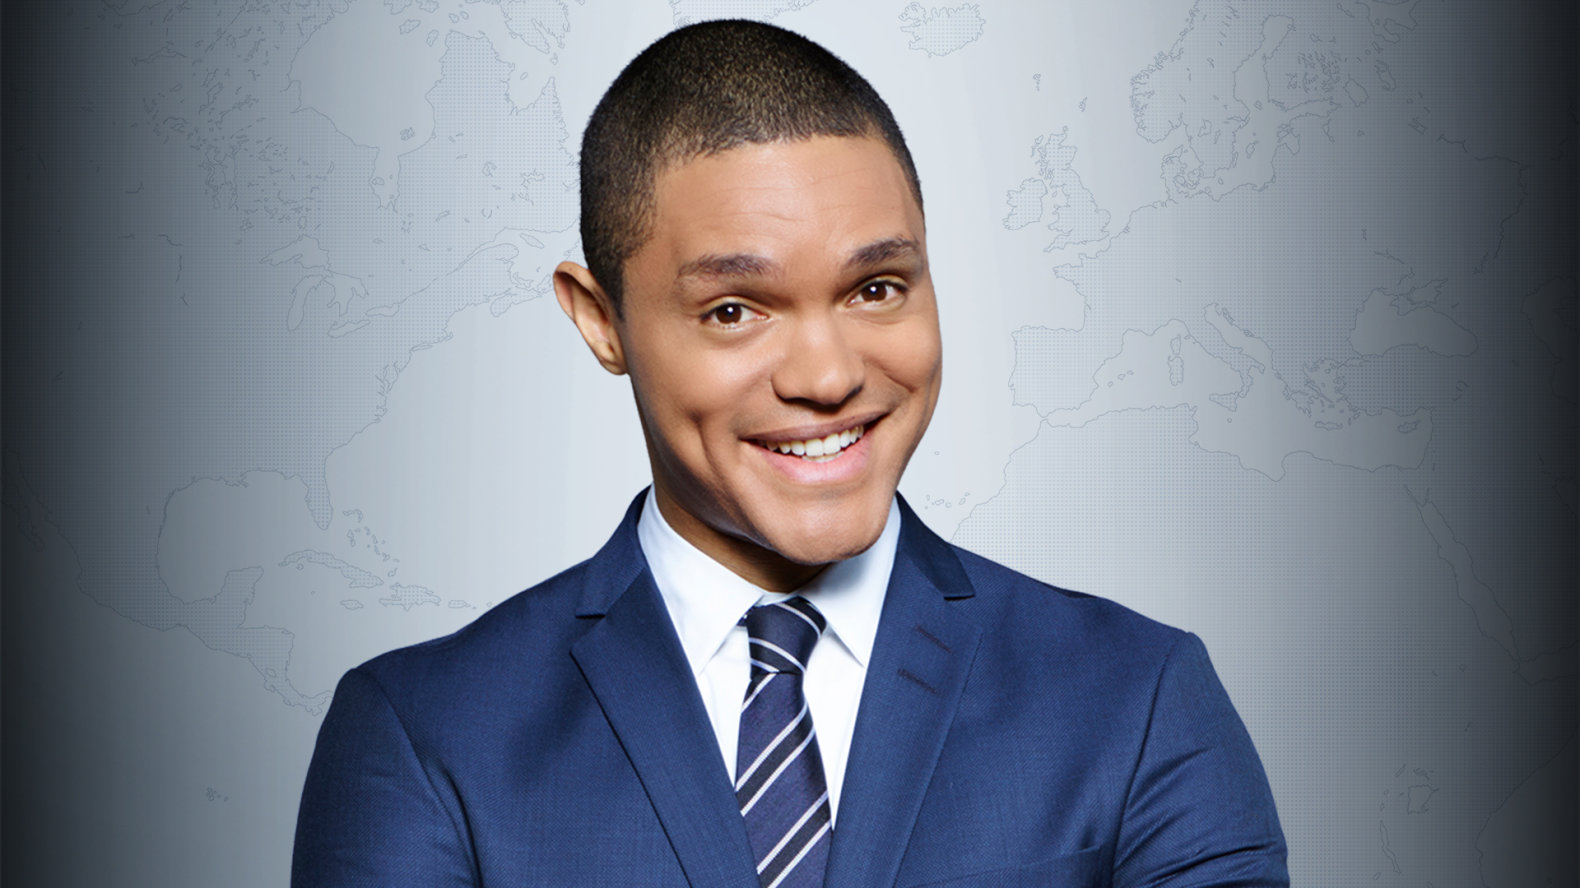 Comedy and Race: Trevor Noah's Use of Humour in Discussing Racism - December 7, 2016 - Academic